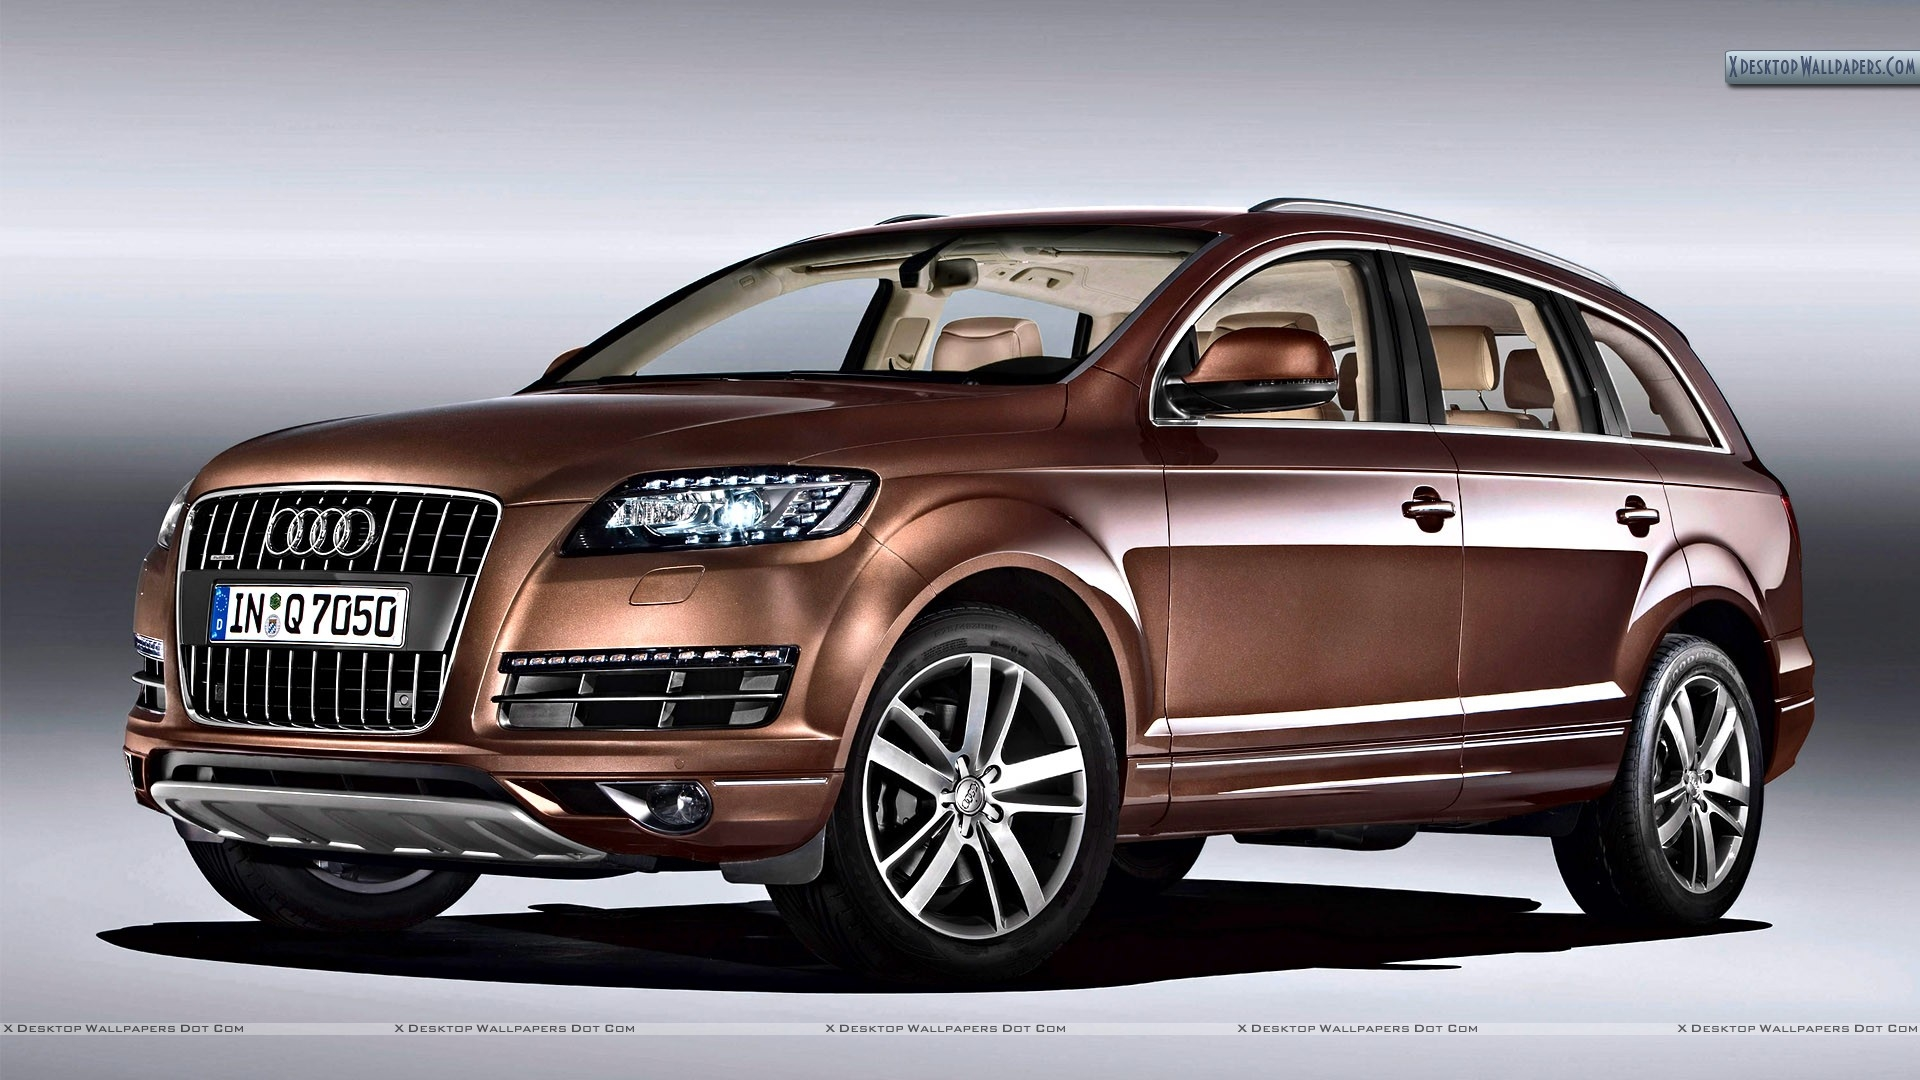 New background images environment free wallpaper - Audi Q7 Wallpaper